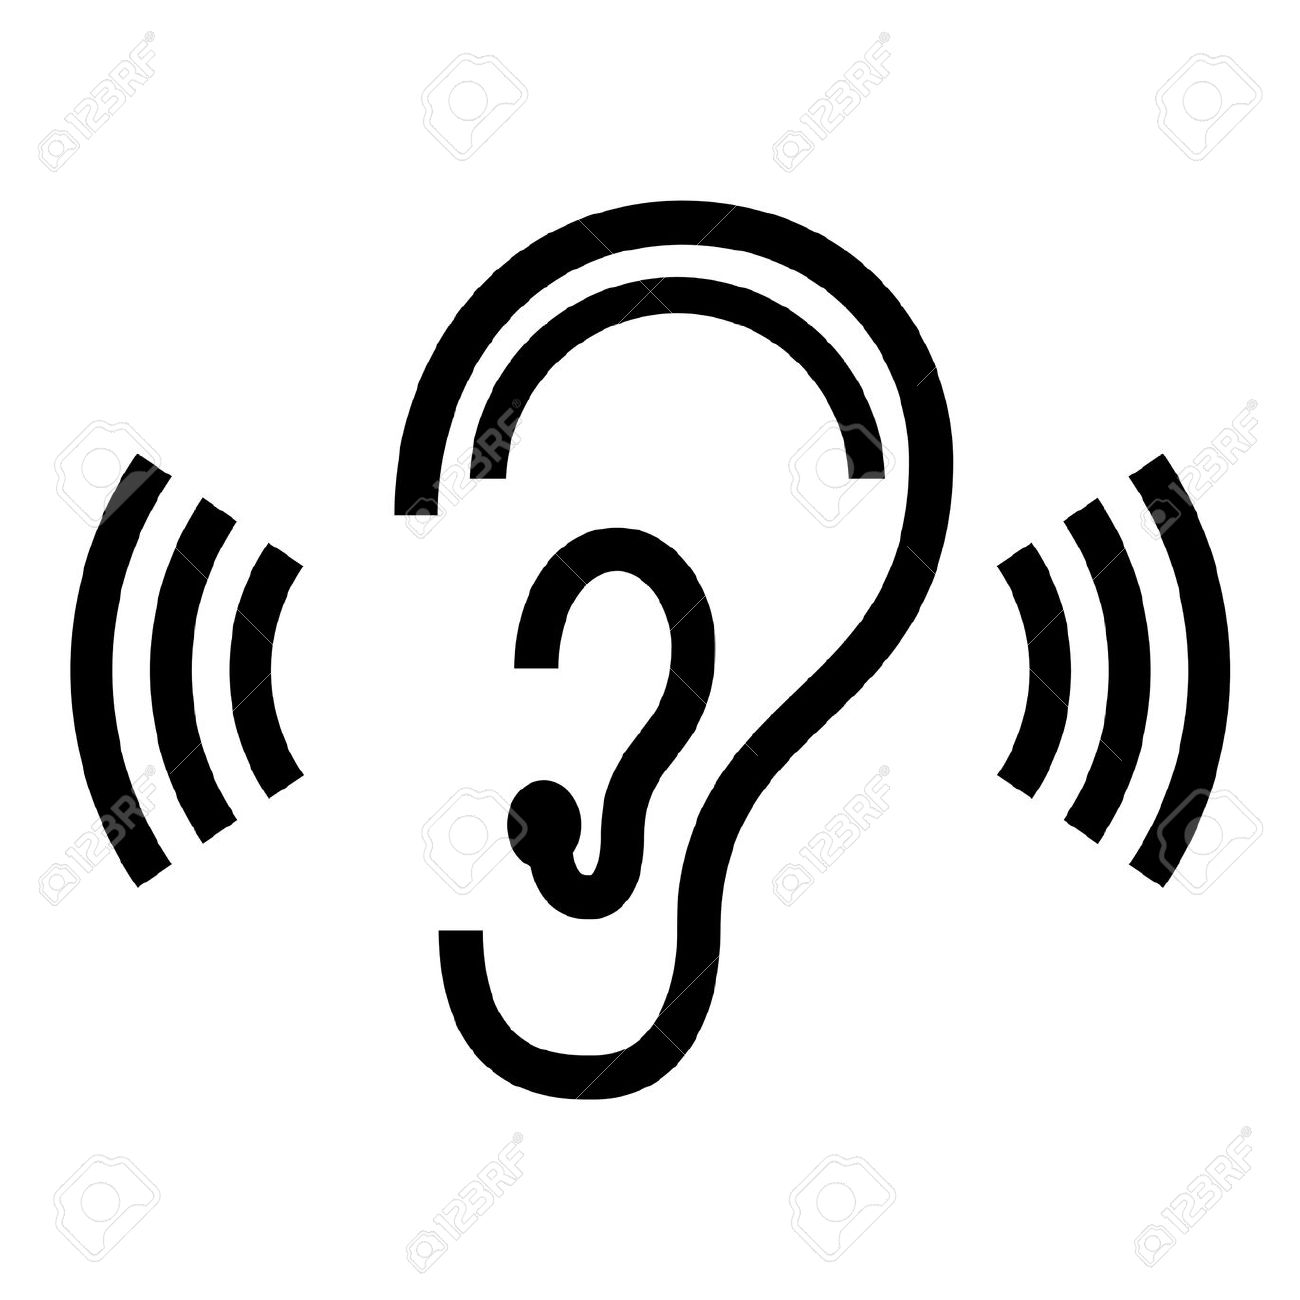 Listening ears clipart communication hearing.